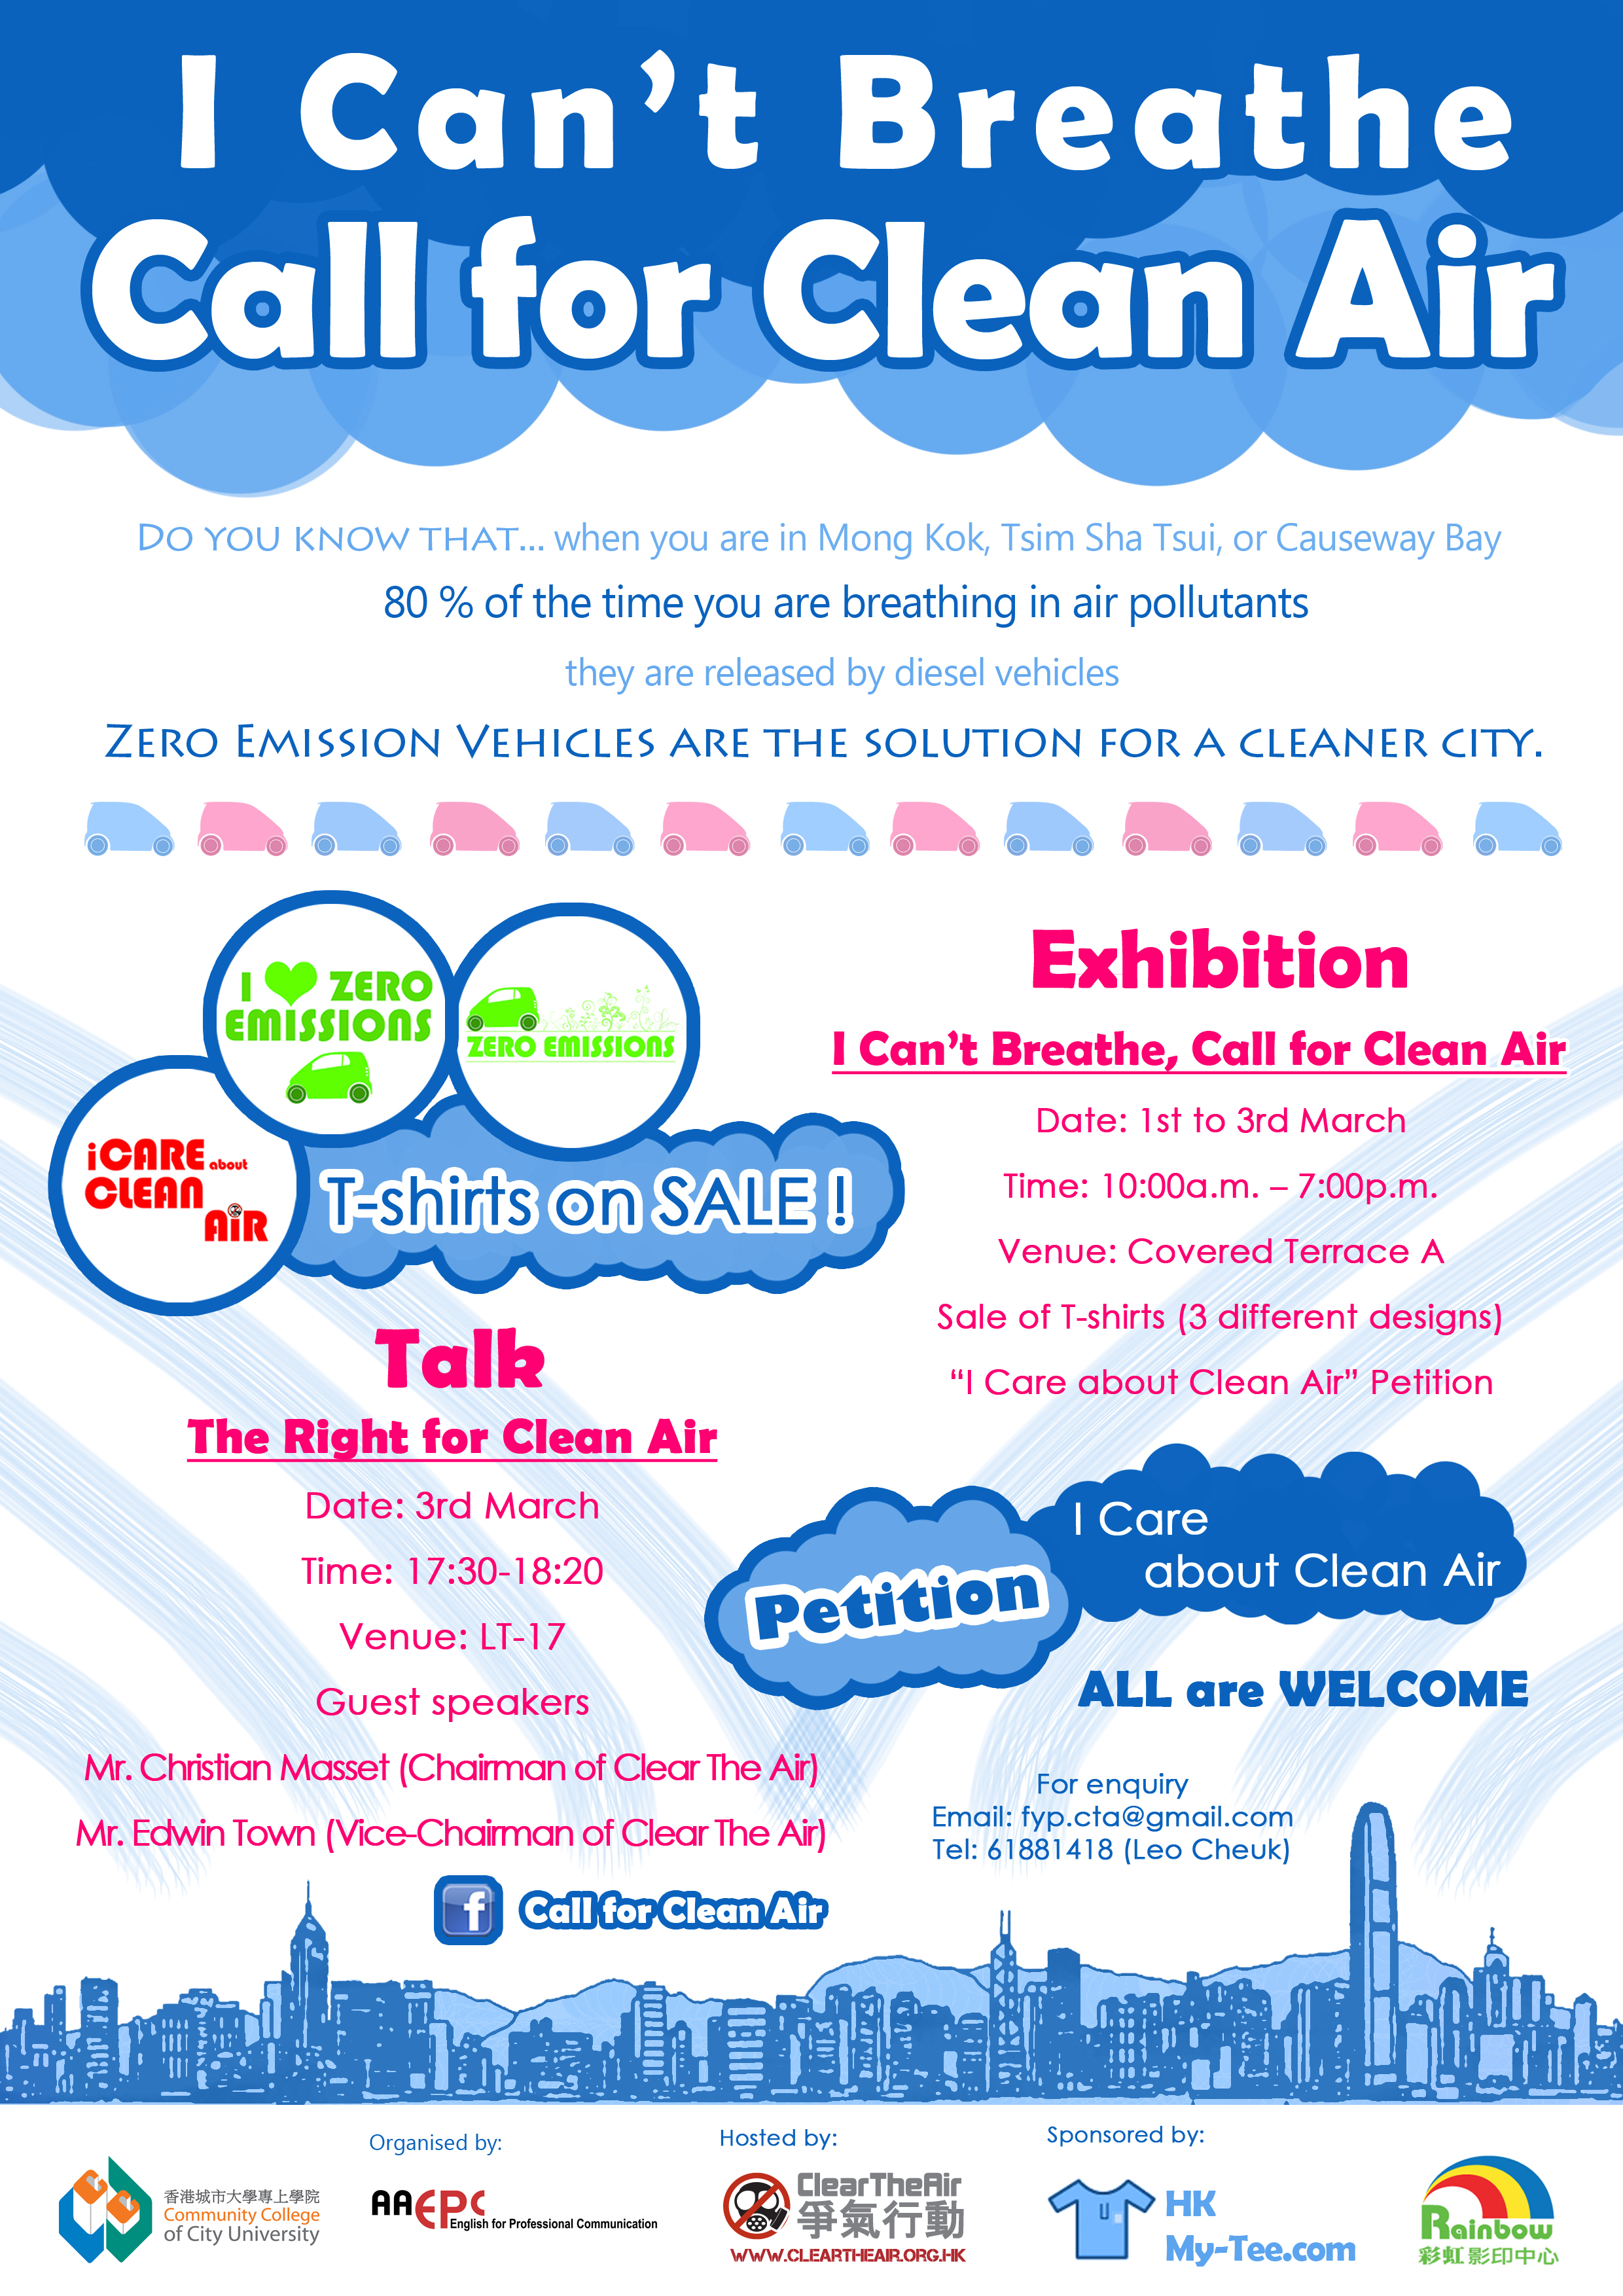 Air Pollution Posters With SloganNoise Pollution Posters With Slogan